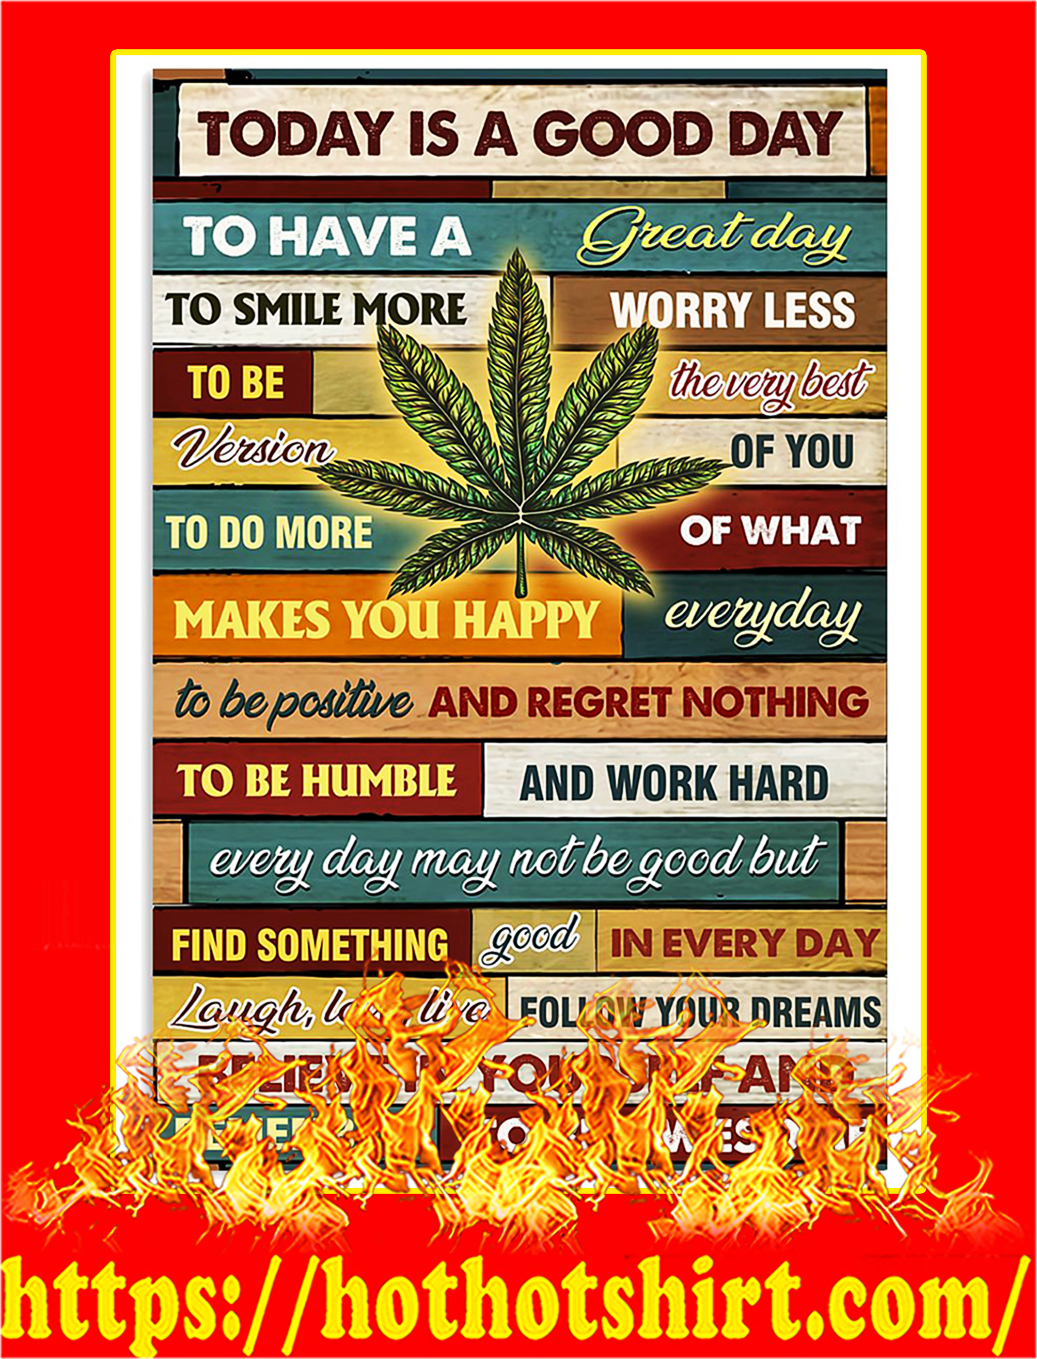 Weed cannabis today is a good day poster - A2